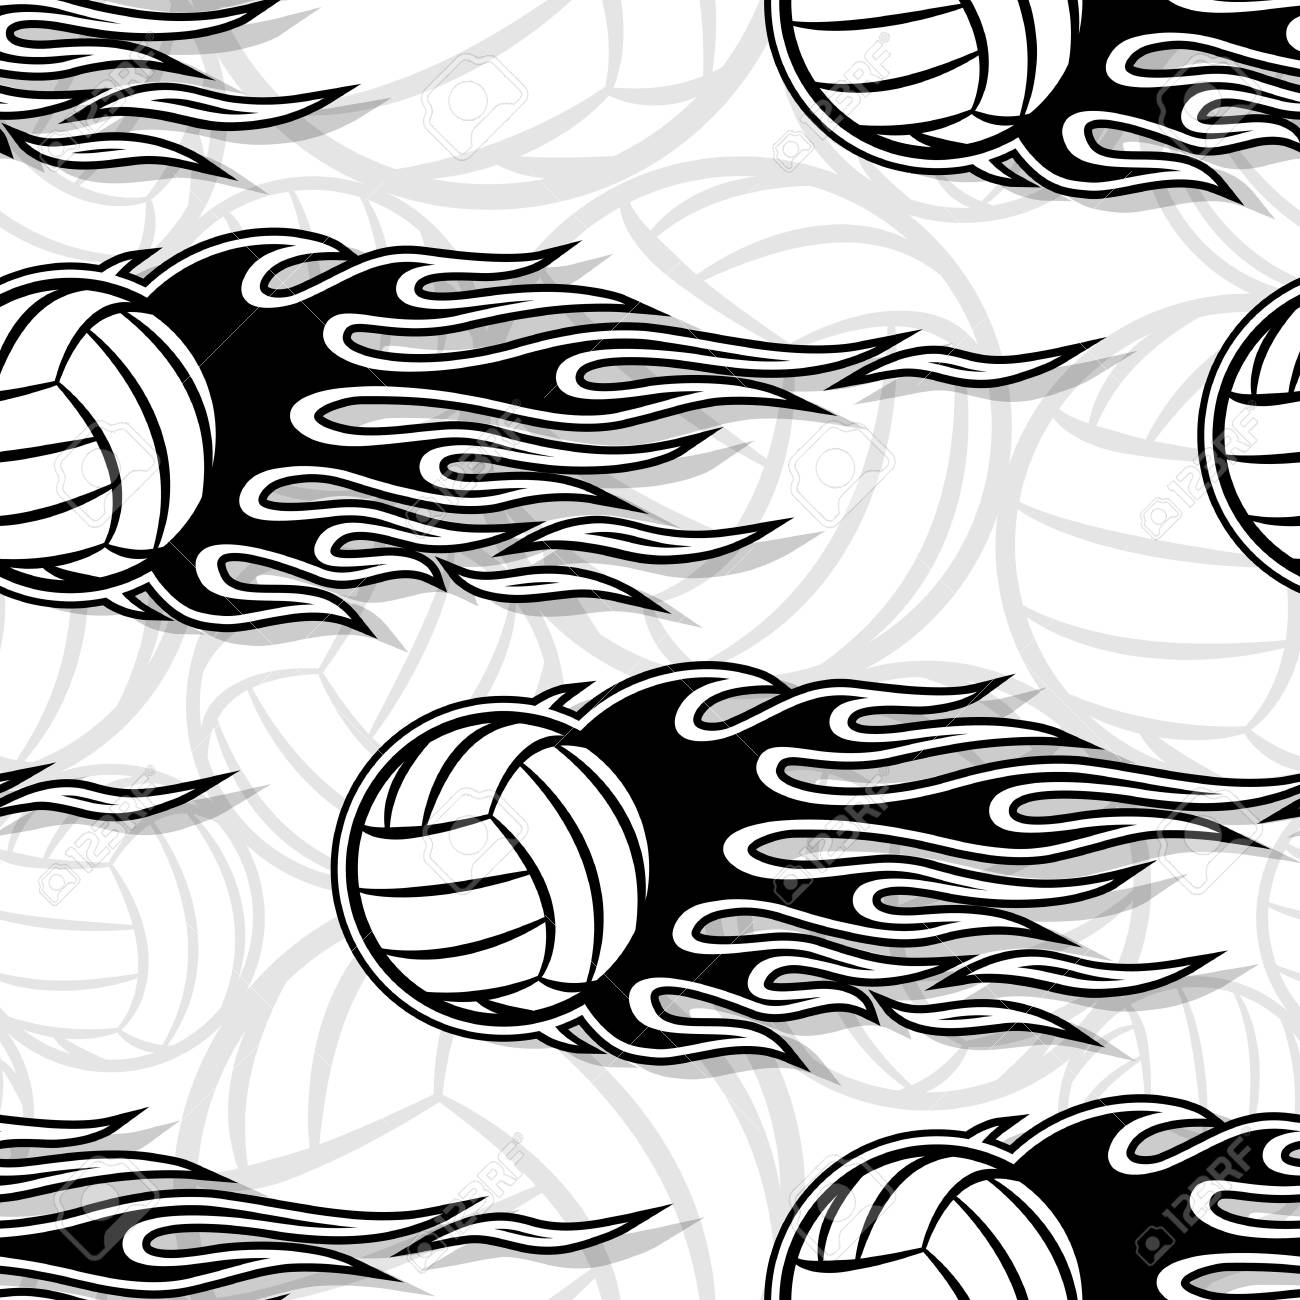 photo about Volleyball Printable called Volleyball ball seamless habit with very hot rod flame. Printable..